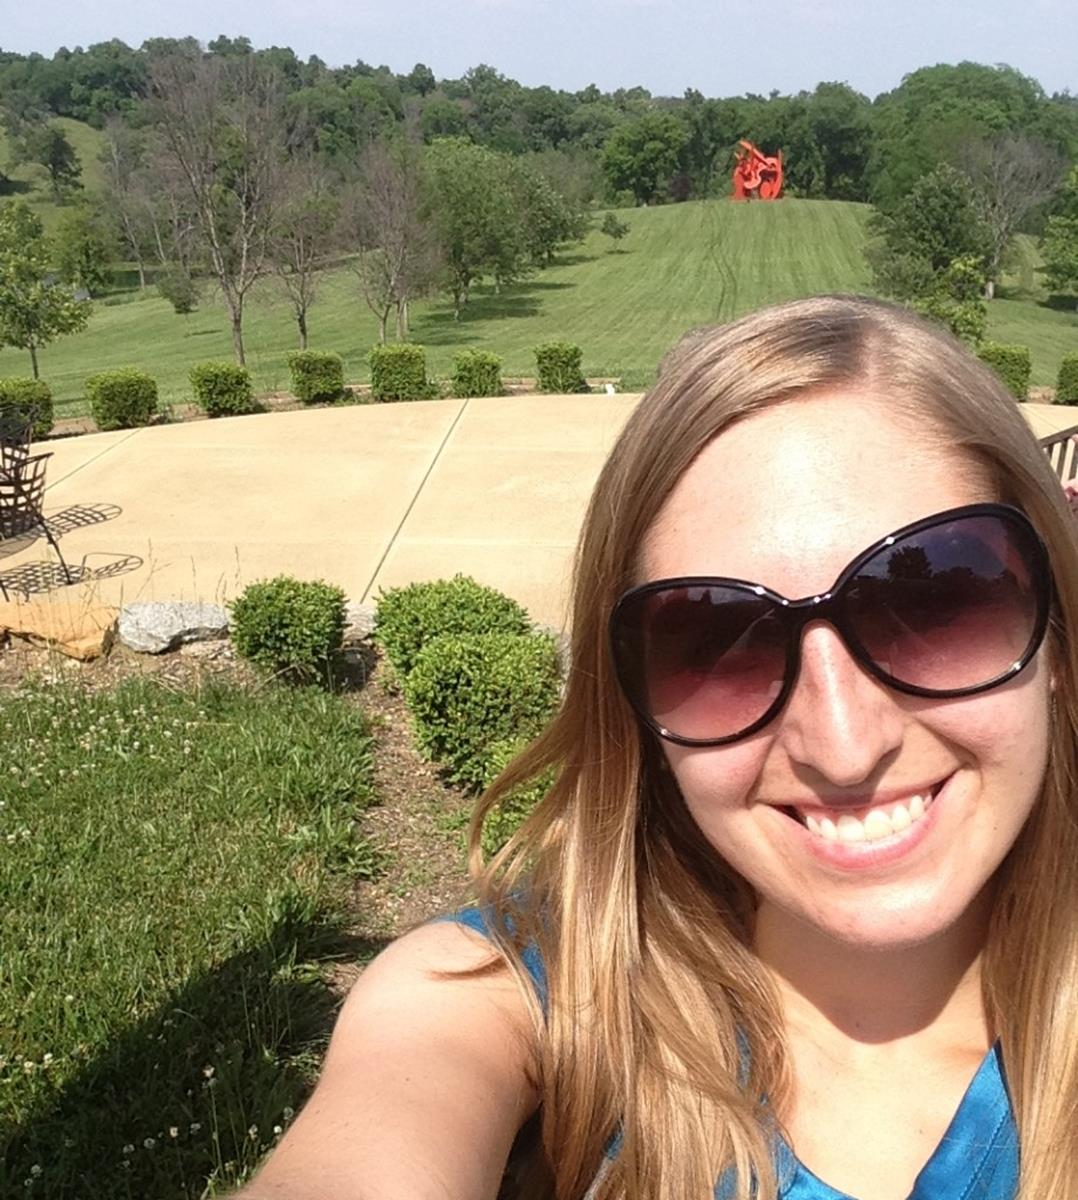 Lauren takes a selfie at the pavilion at Pyramid Hill. Credit: Lauren Reiniger